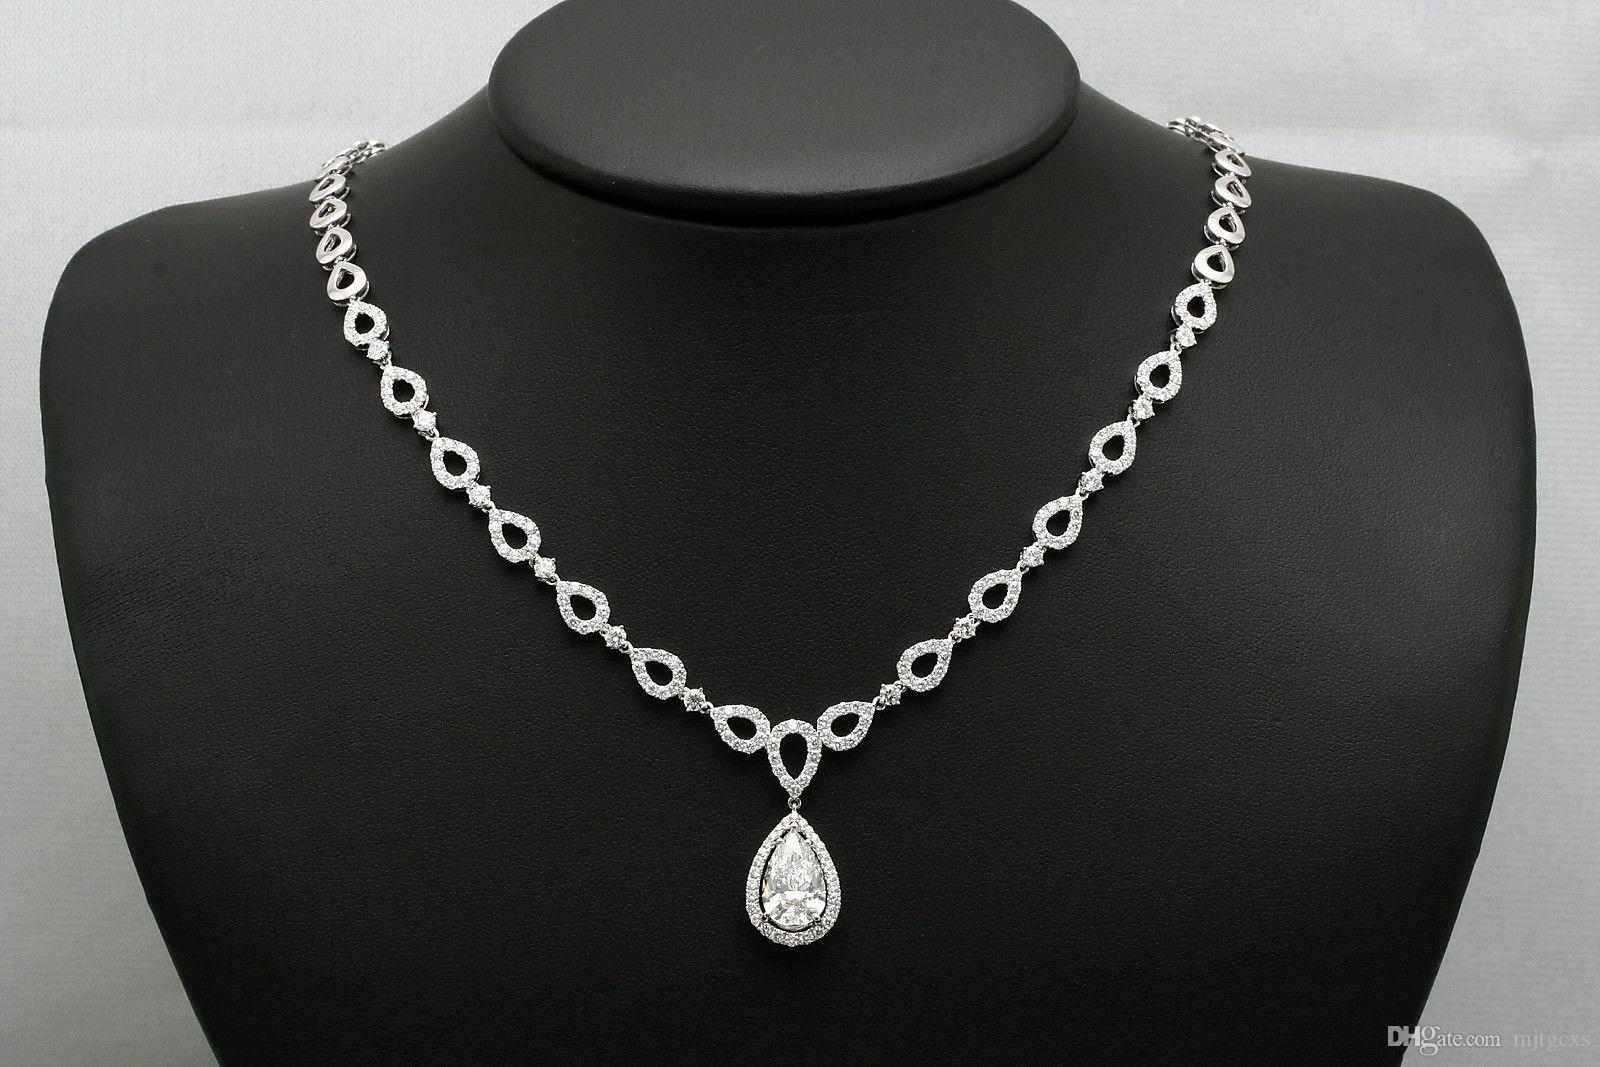 marsha by pendant pear pav necklaces shaped shape diamond jewelry necklace